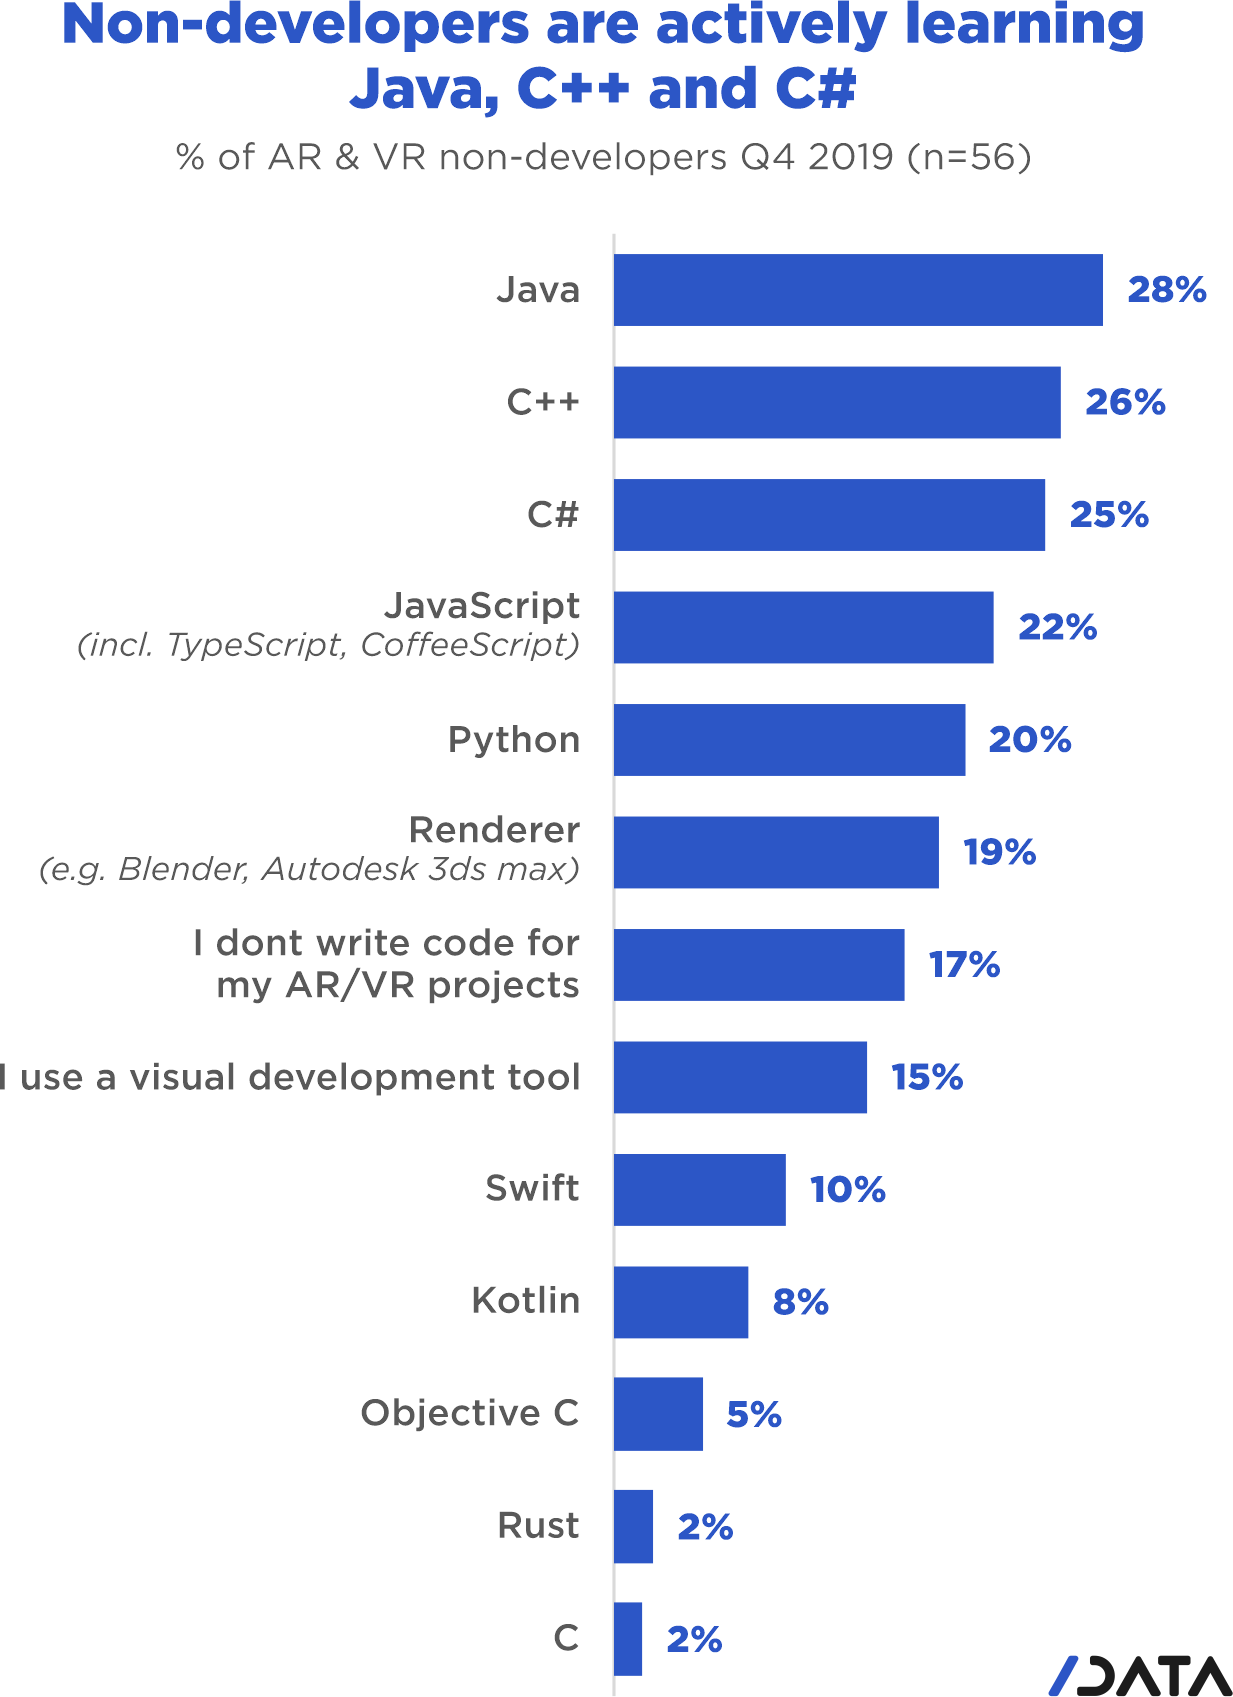 AR/VR trends. Non-developers are actively learning Java, C++ and C#